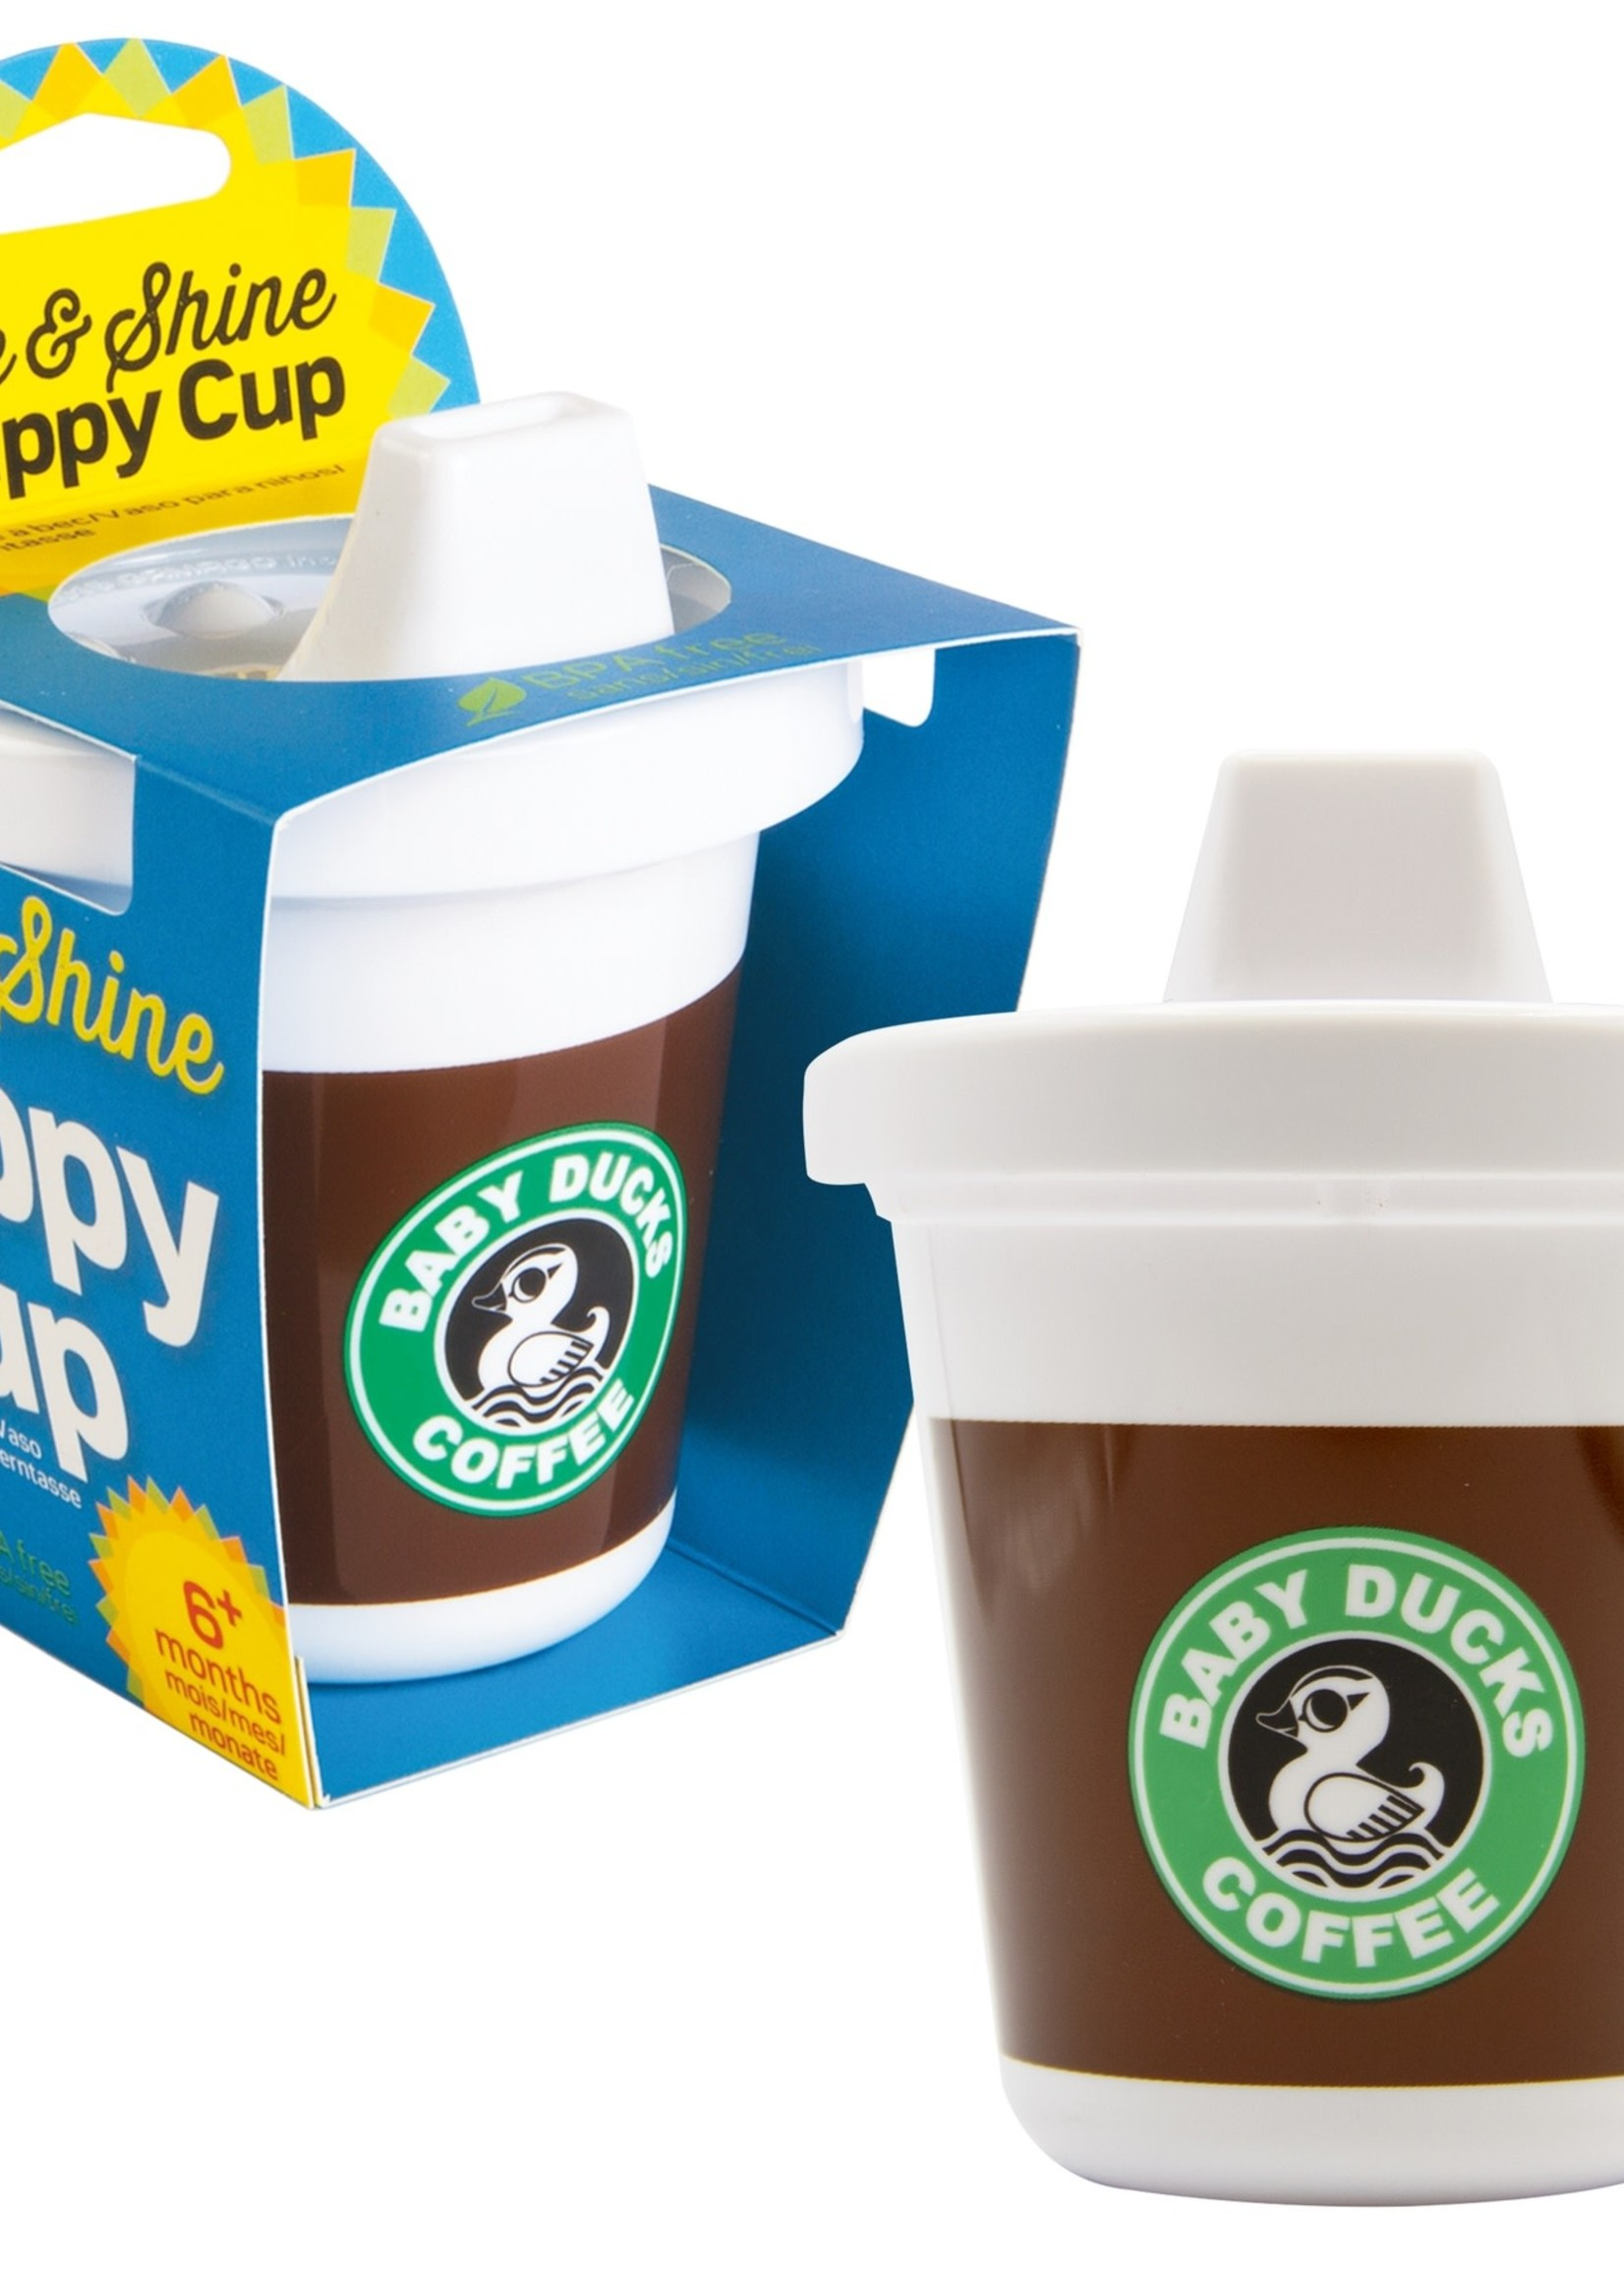 GAMA GO GAMAGO RISE AND SHIINE SIPPY CUP